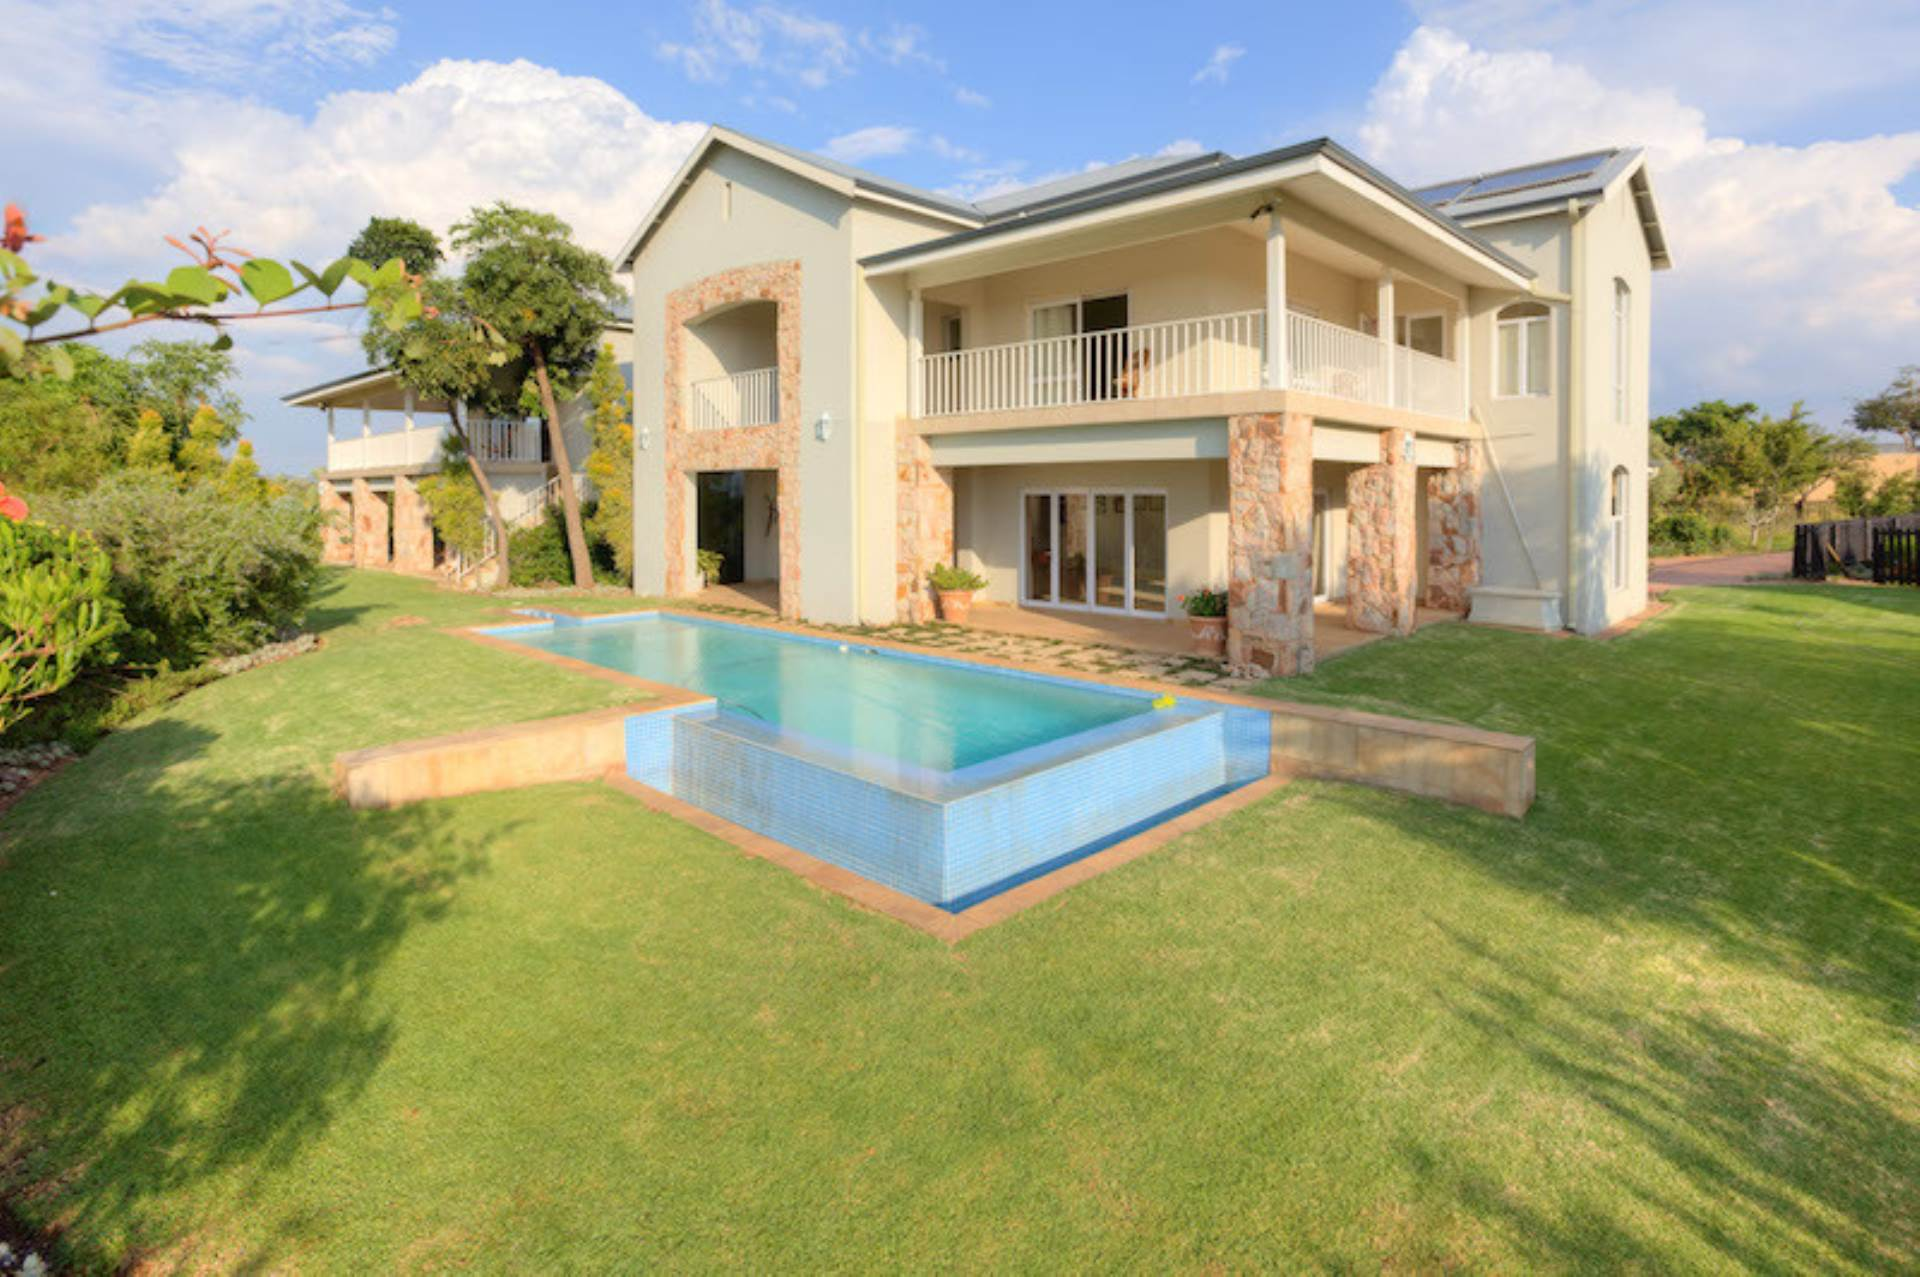 4 BedroomCluster To Rent In Waterfall Equestrian Estate